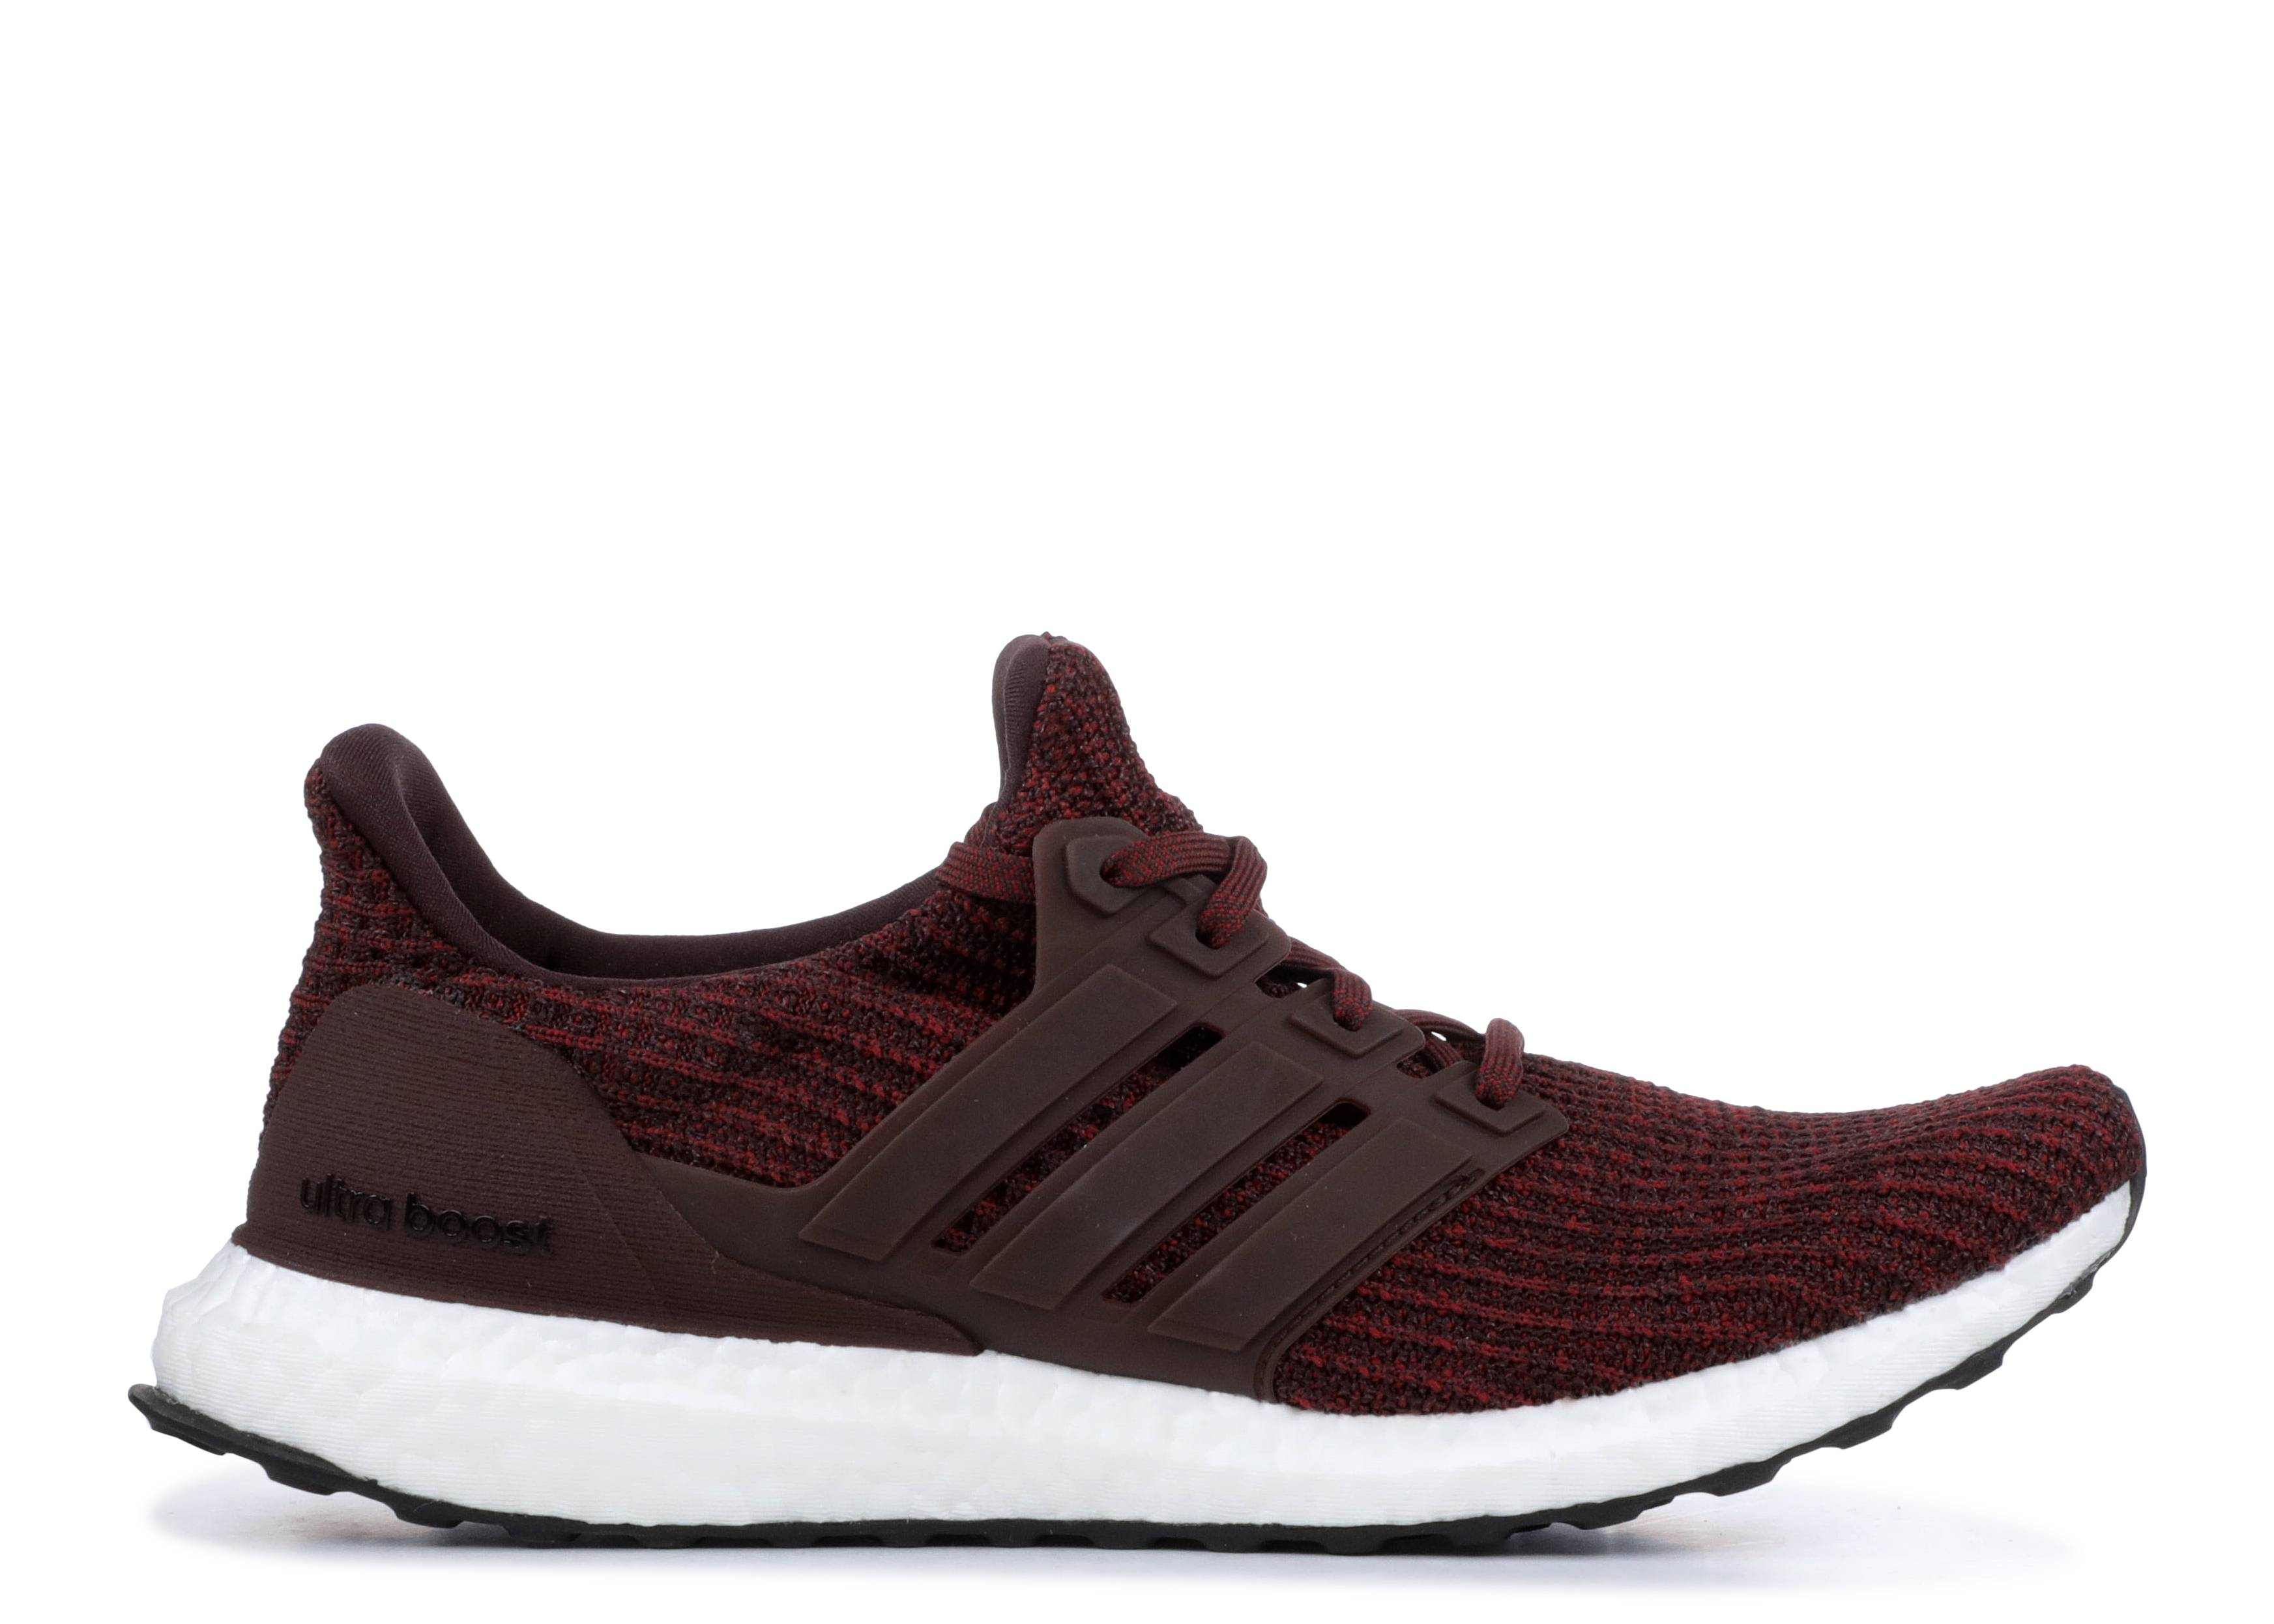 393494e3d6ac Ultra Boost - Adidas - cm8115 - night red/night red/noble maroon | Flight  Club